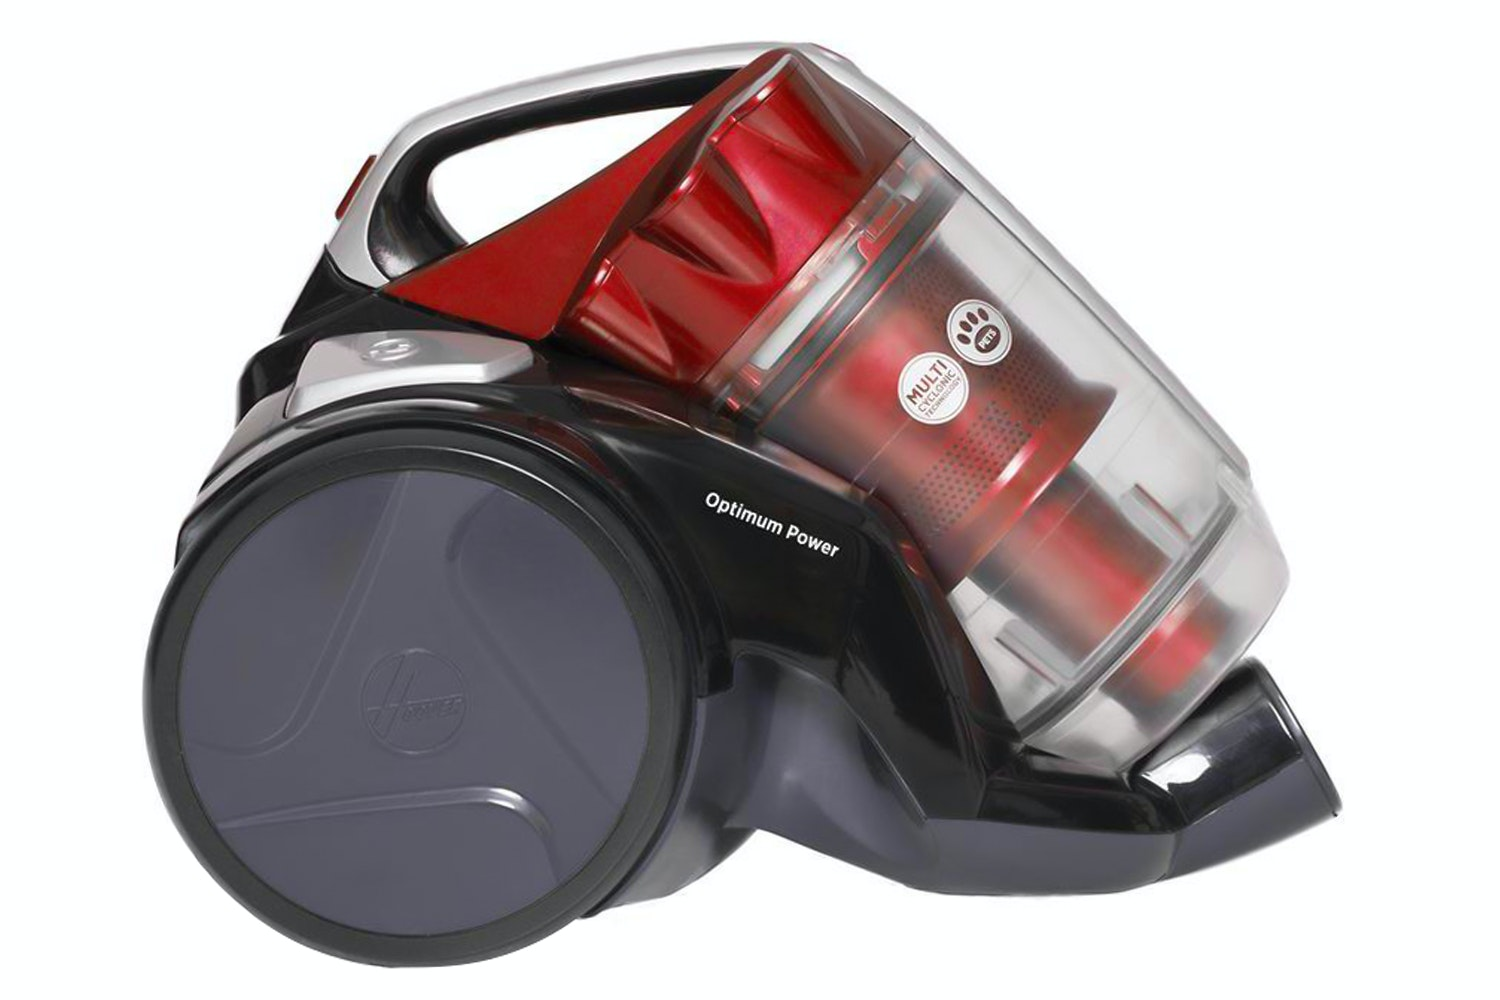 Hoover Optimum Power Bagless Cylinder Vacuum Cleaner | KS51_OP2